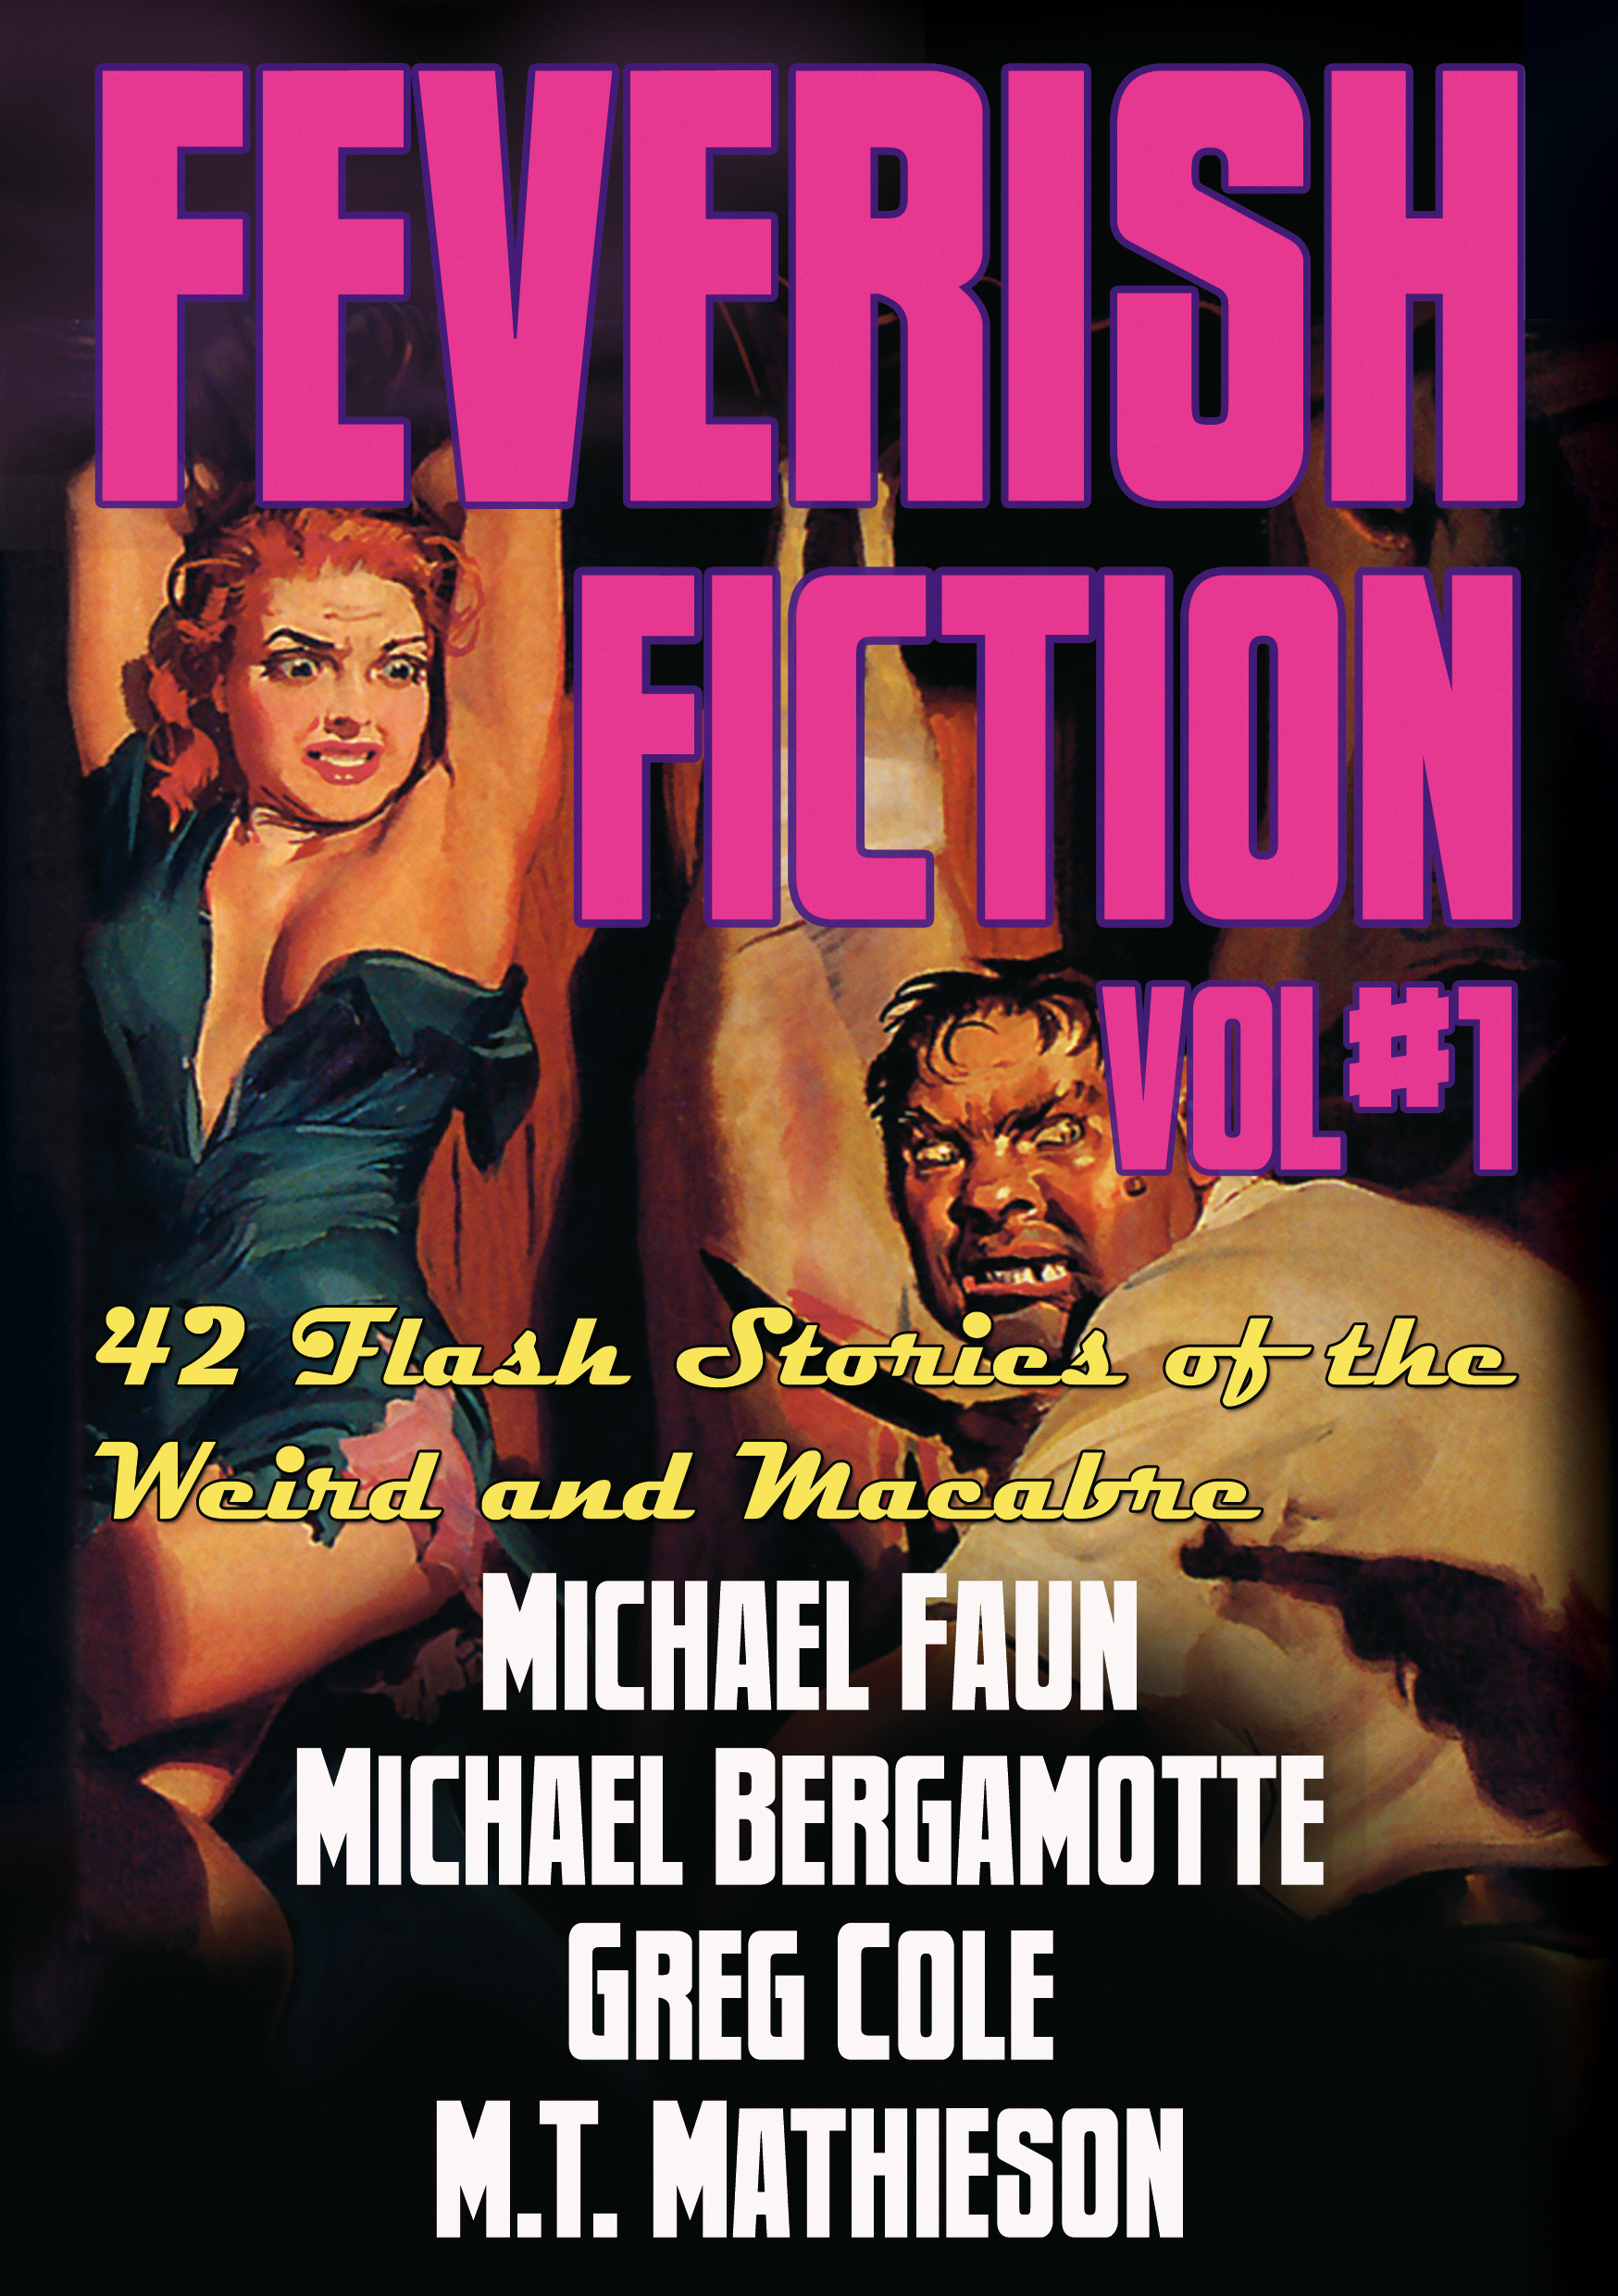 Feverish Fiction 2012